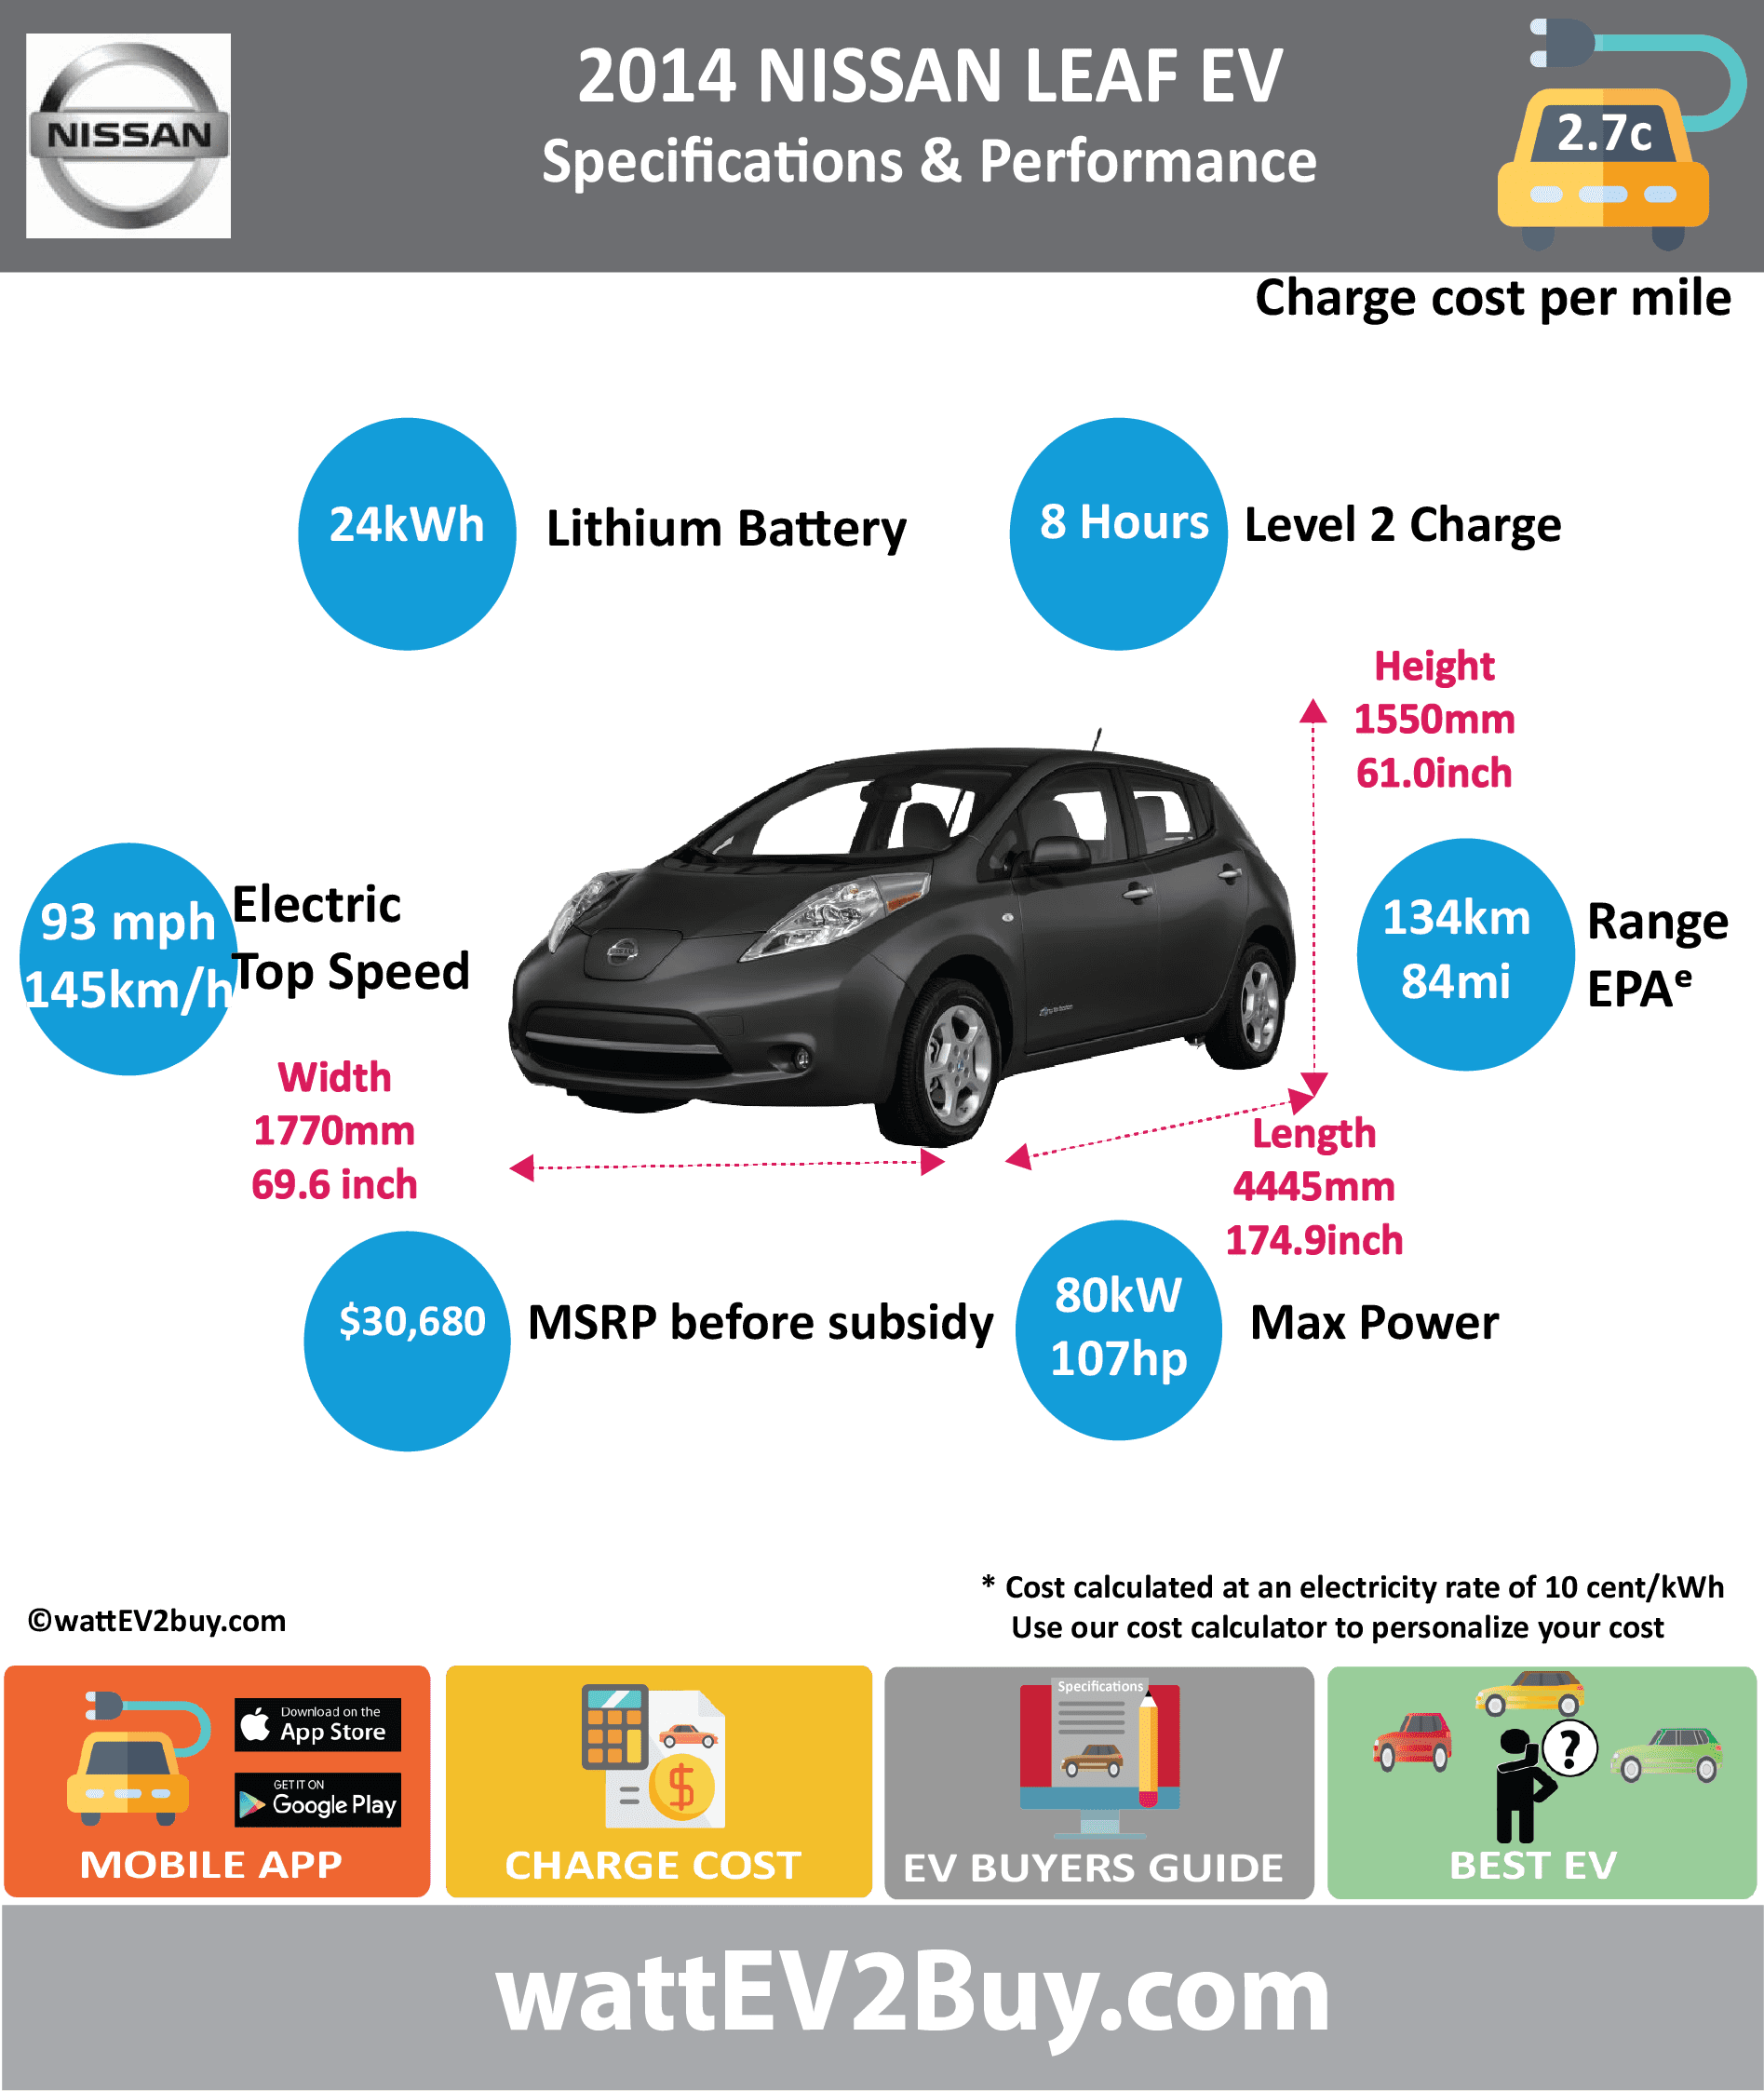 NISSAN LEAF EV Wattev2Buy.com 2011 2012 2013 2014 2015 2016 2017 2018  Battery Chemistry